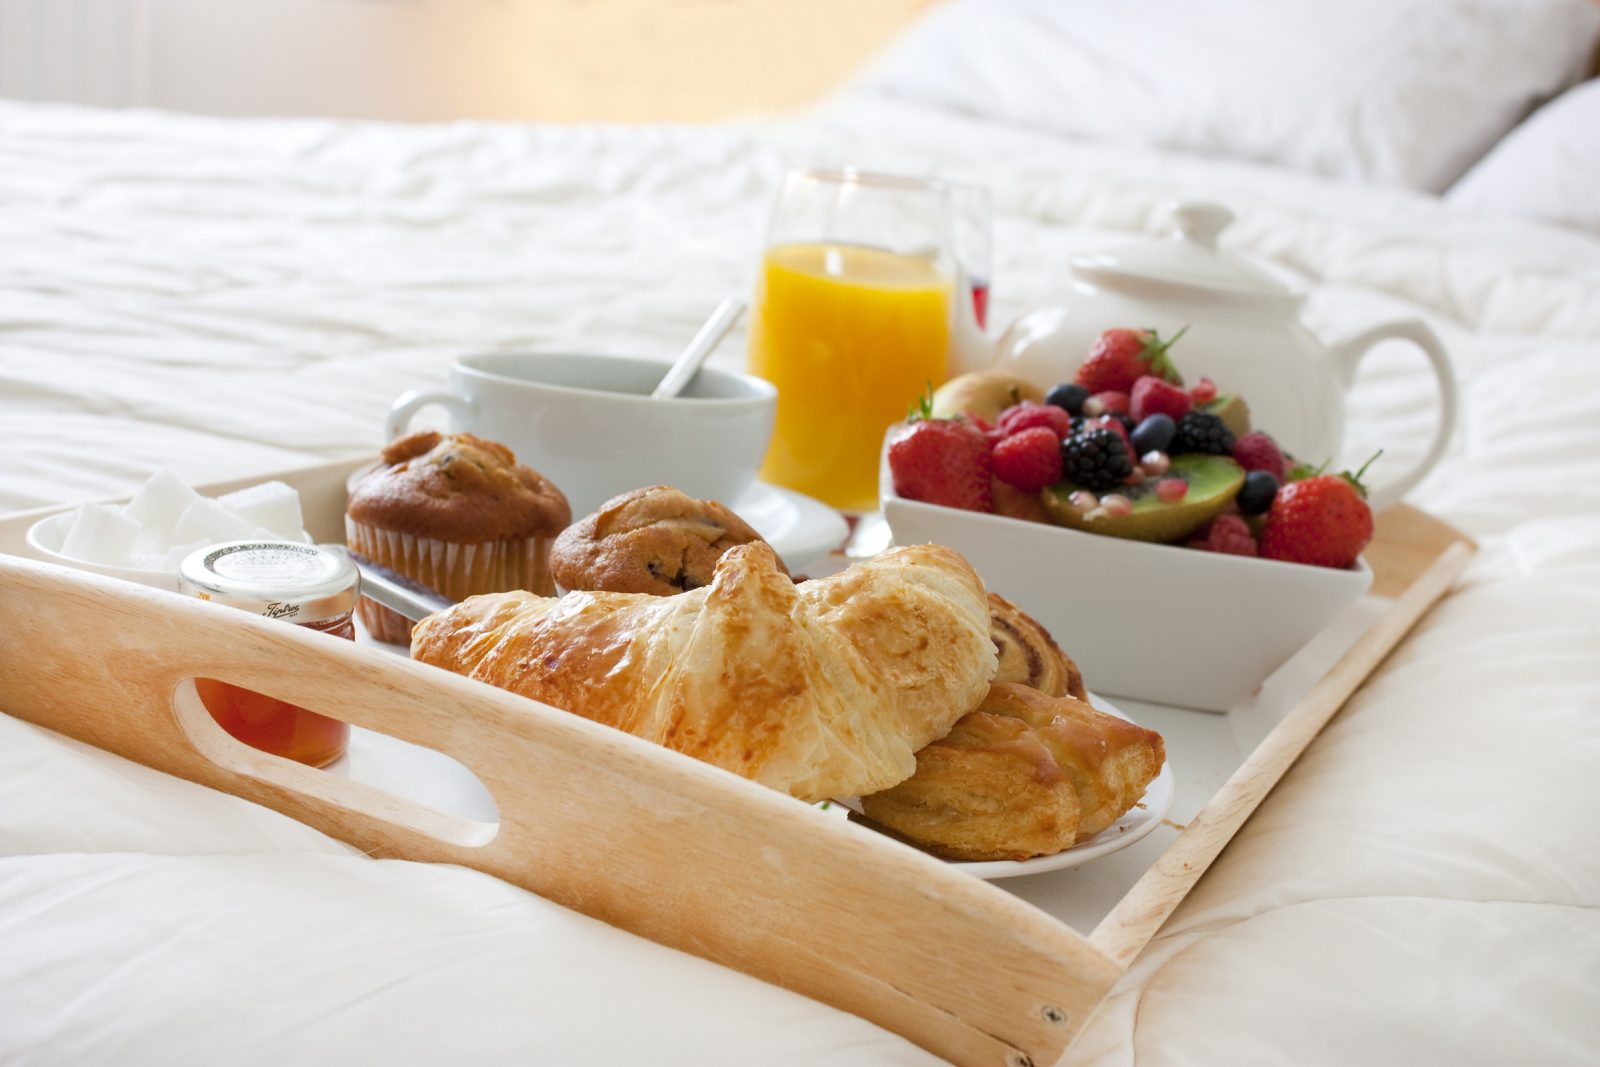 Breakfast in bed is a great way to start the day. (ShutterStock)